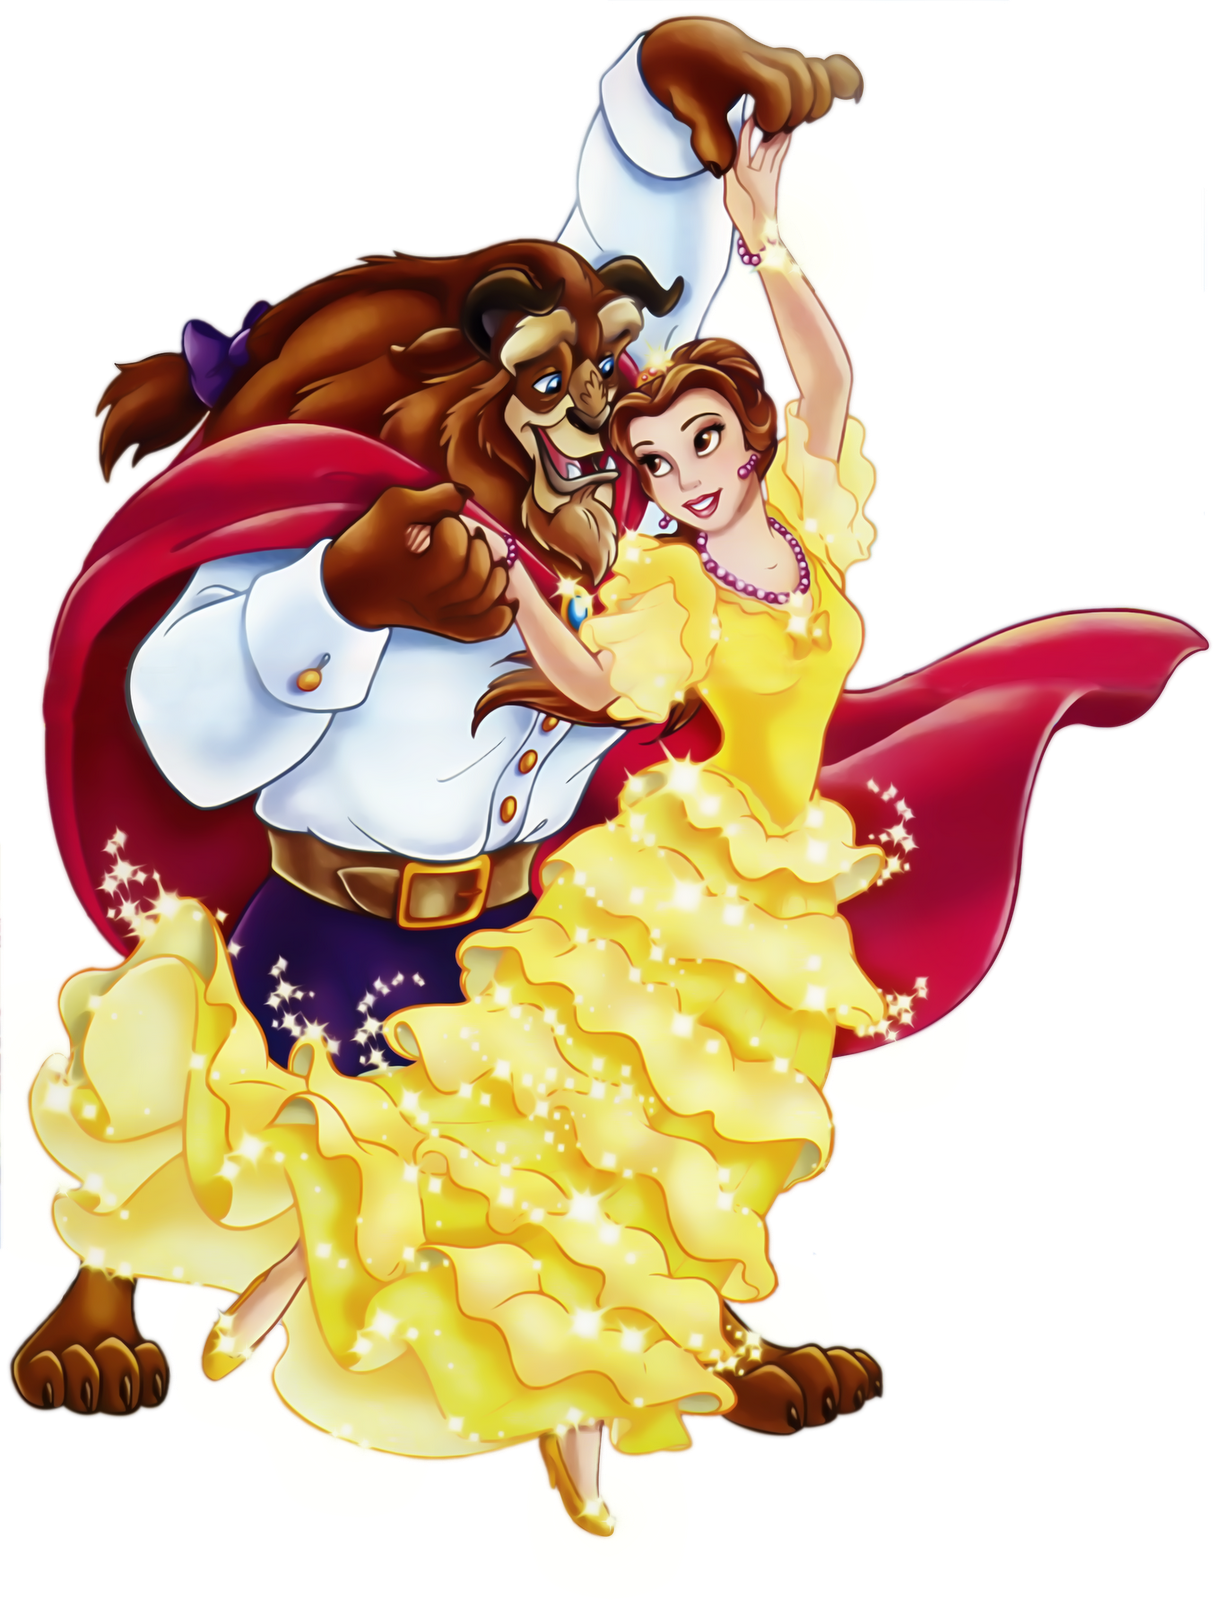 Beast clipart disney belle And the Beast PNG Clipart